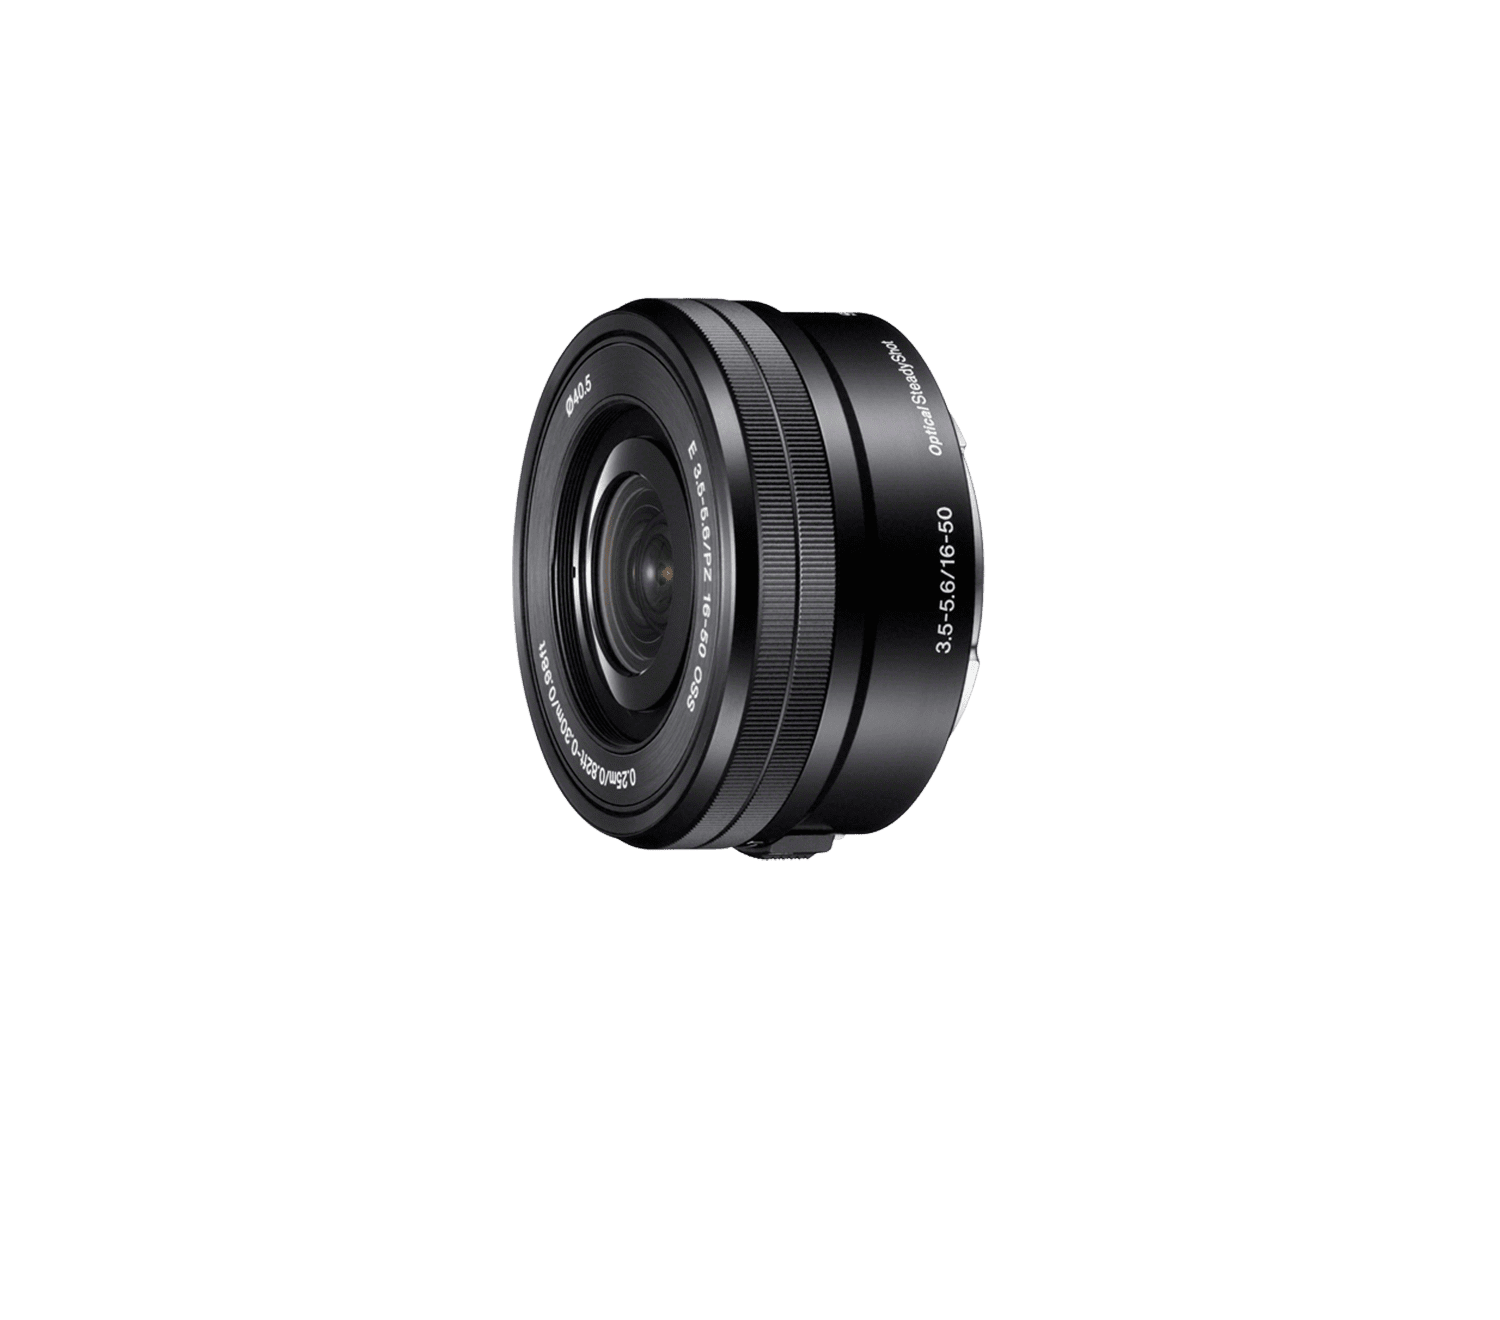 Alpha 6300 E-mount camera with E-Mount 16-50mm Zoom Lens, , product-image